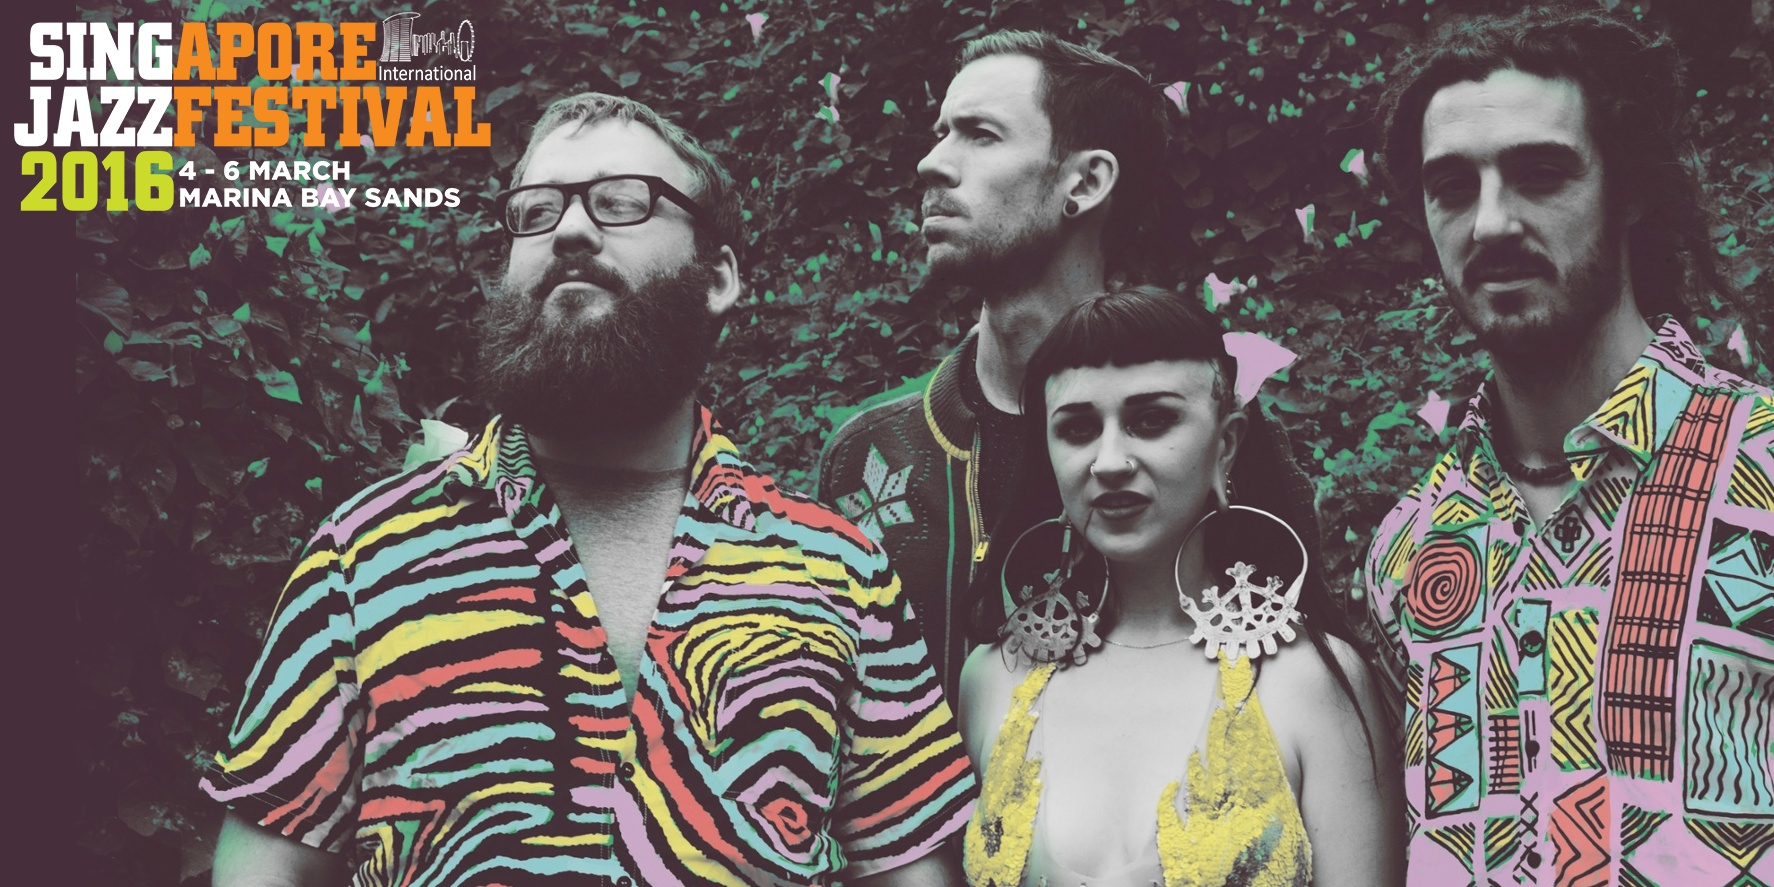 The Hiatus Kaiyote live experience, as described by Singaporean musicians